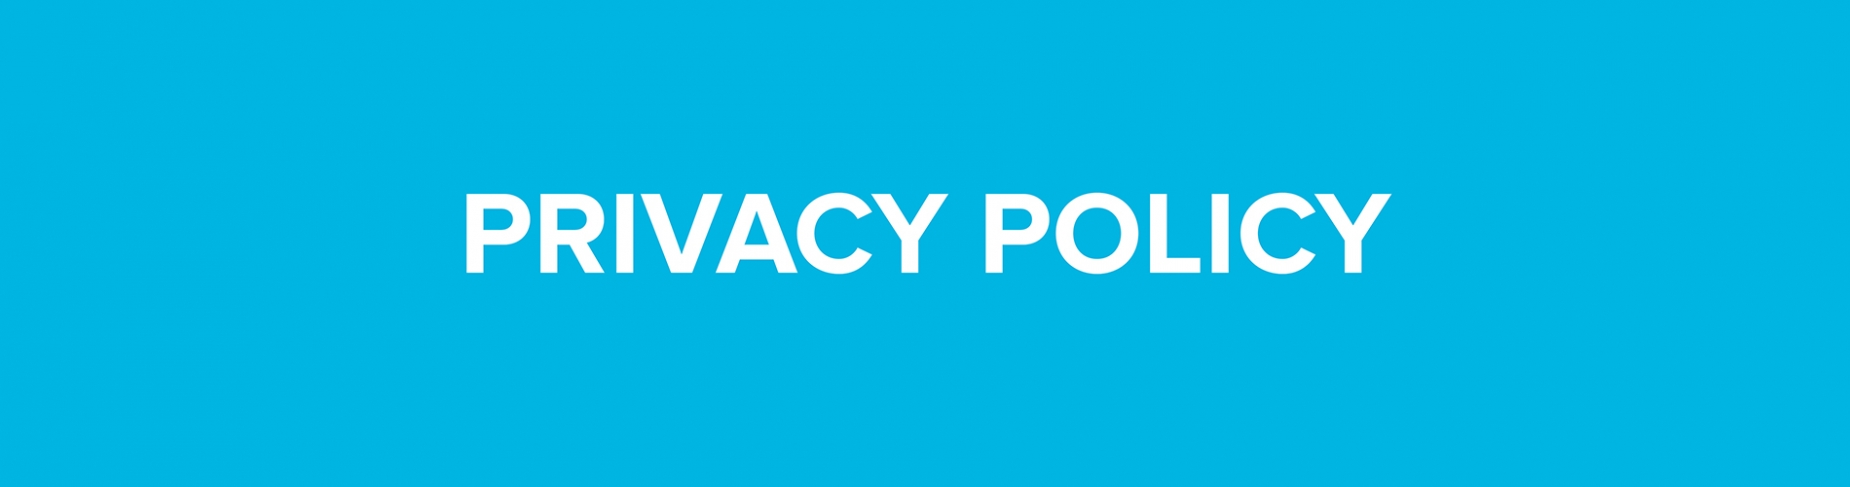 privacypolicy-header.jpg